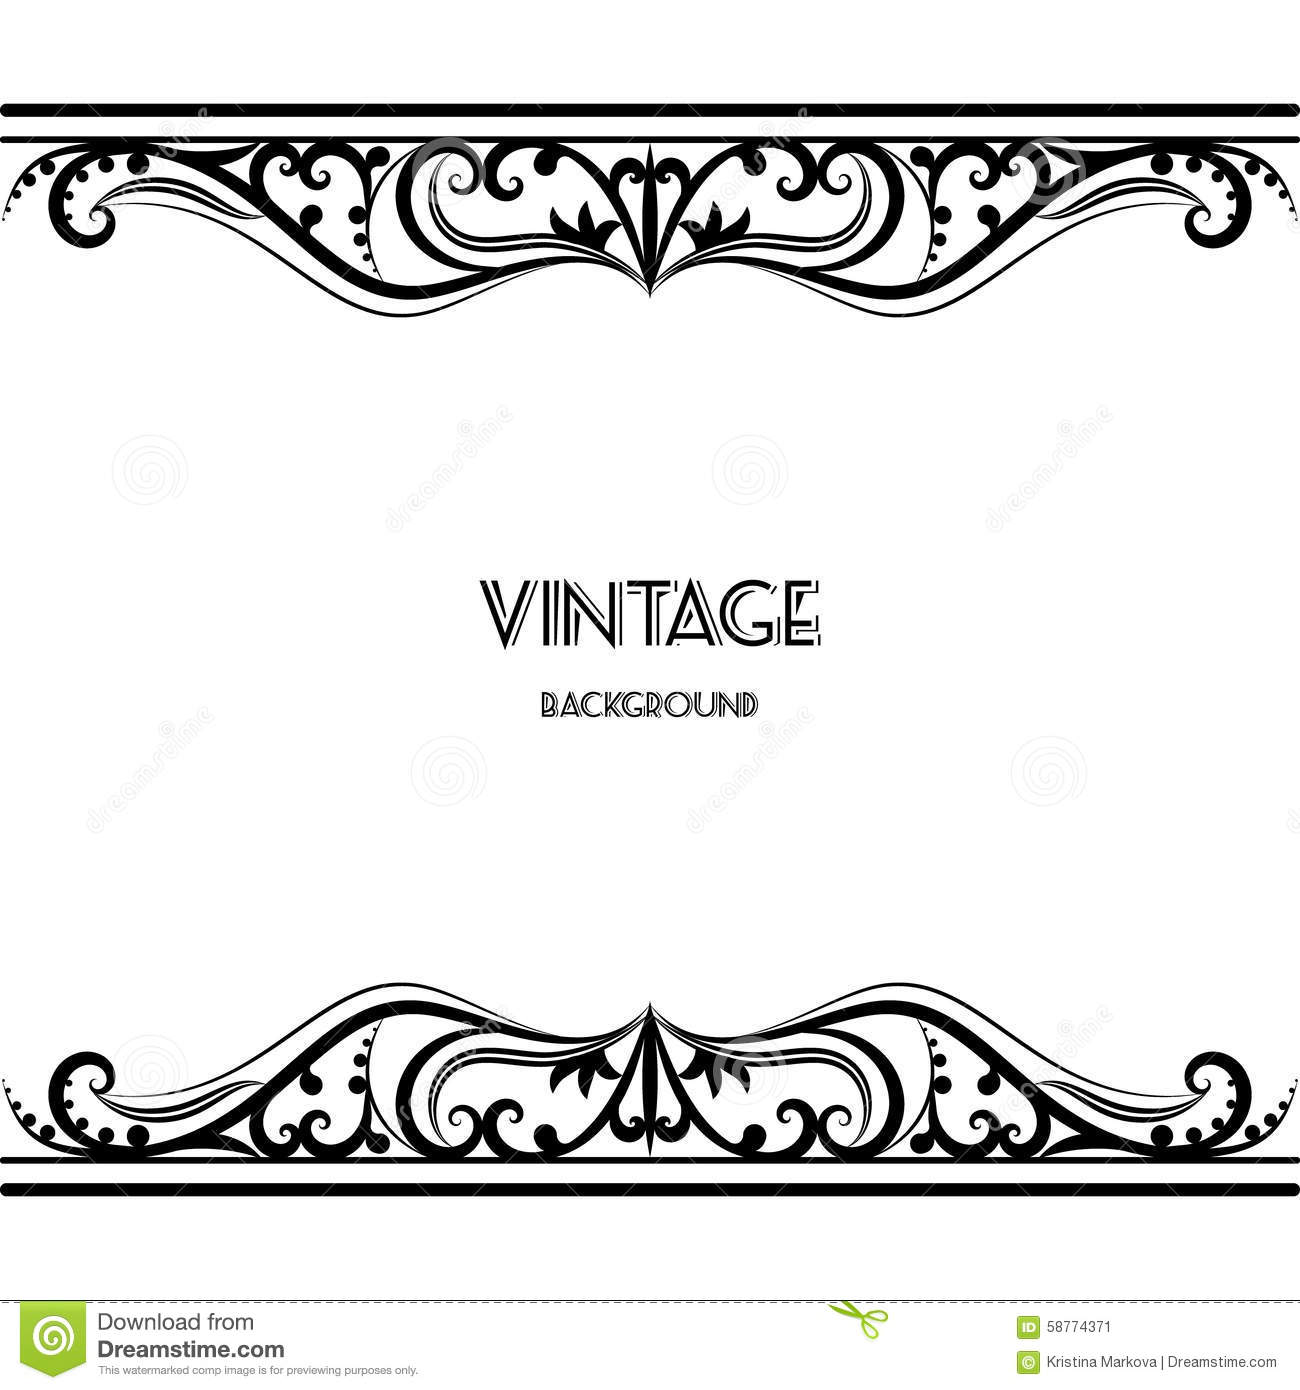 Vintage Design Vintage Border Design